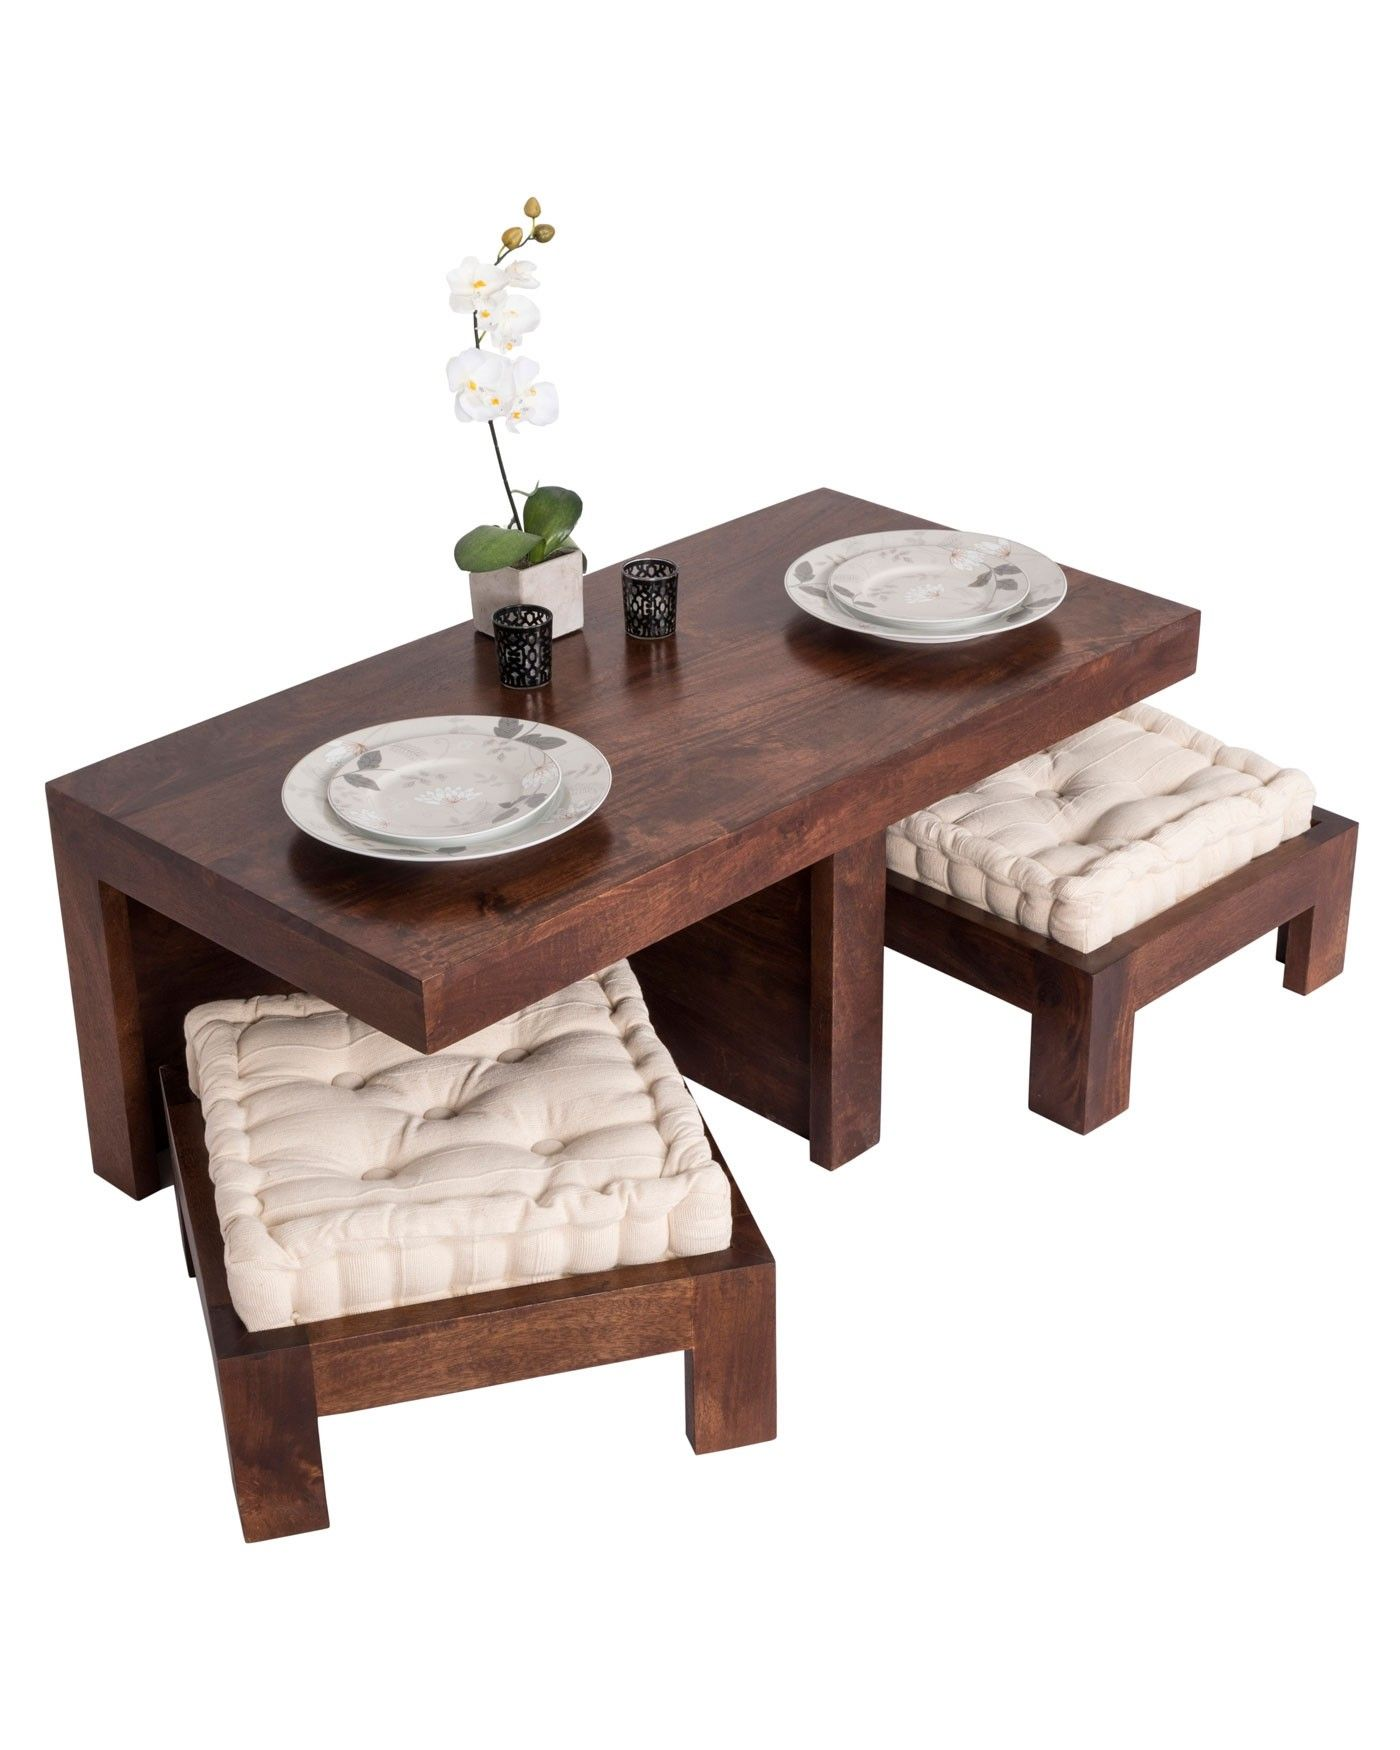 Dark Shade Dakota Coffee Table Set With Two Stools 100 Solid Wood In 2020 Coffee Table With Seating Solid Wood Dining Table Wood Furniture Living Room